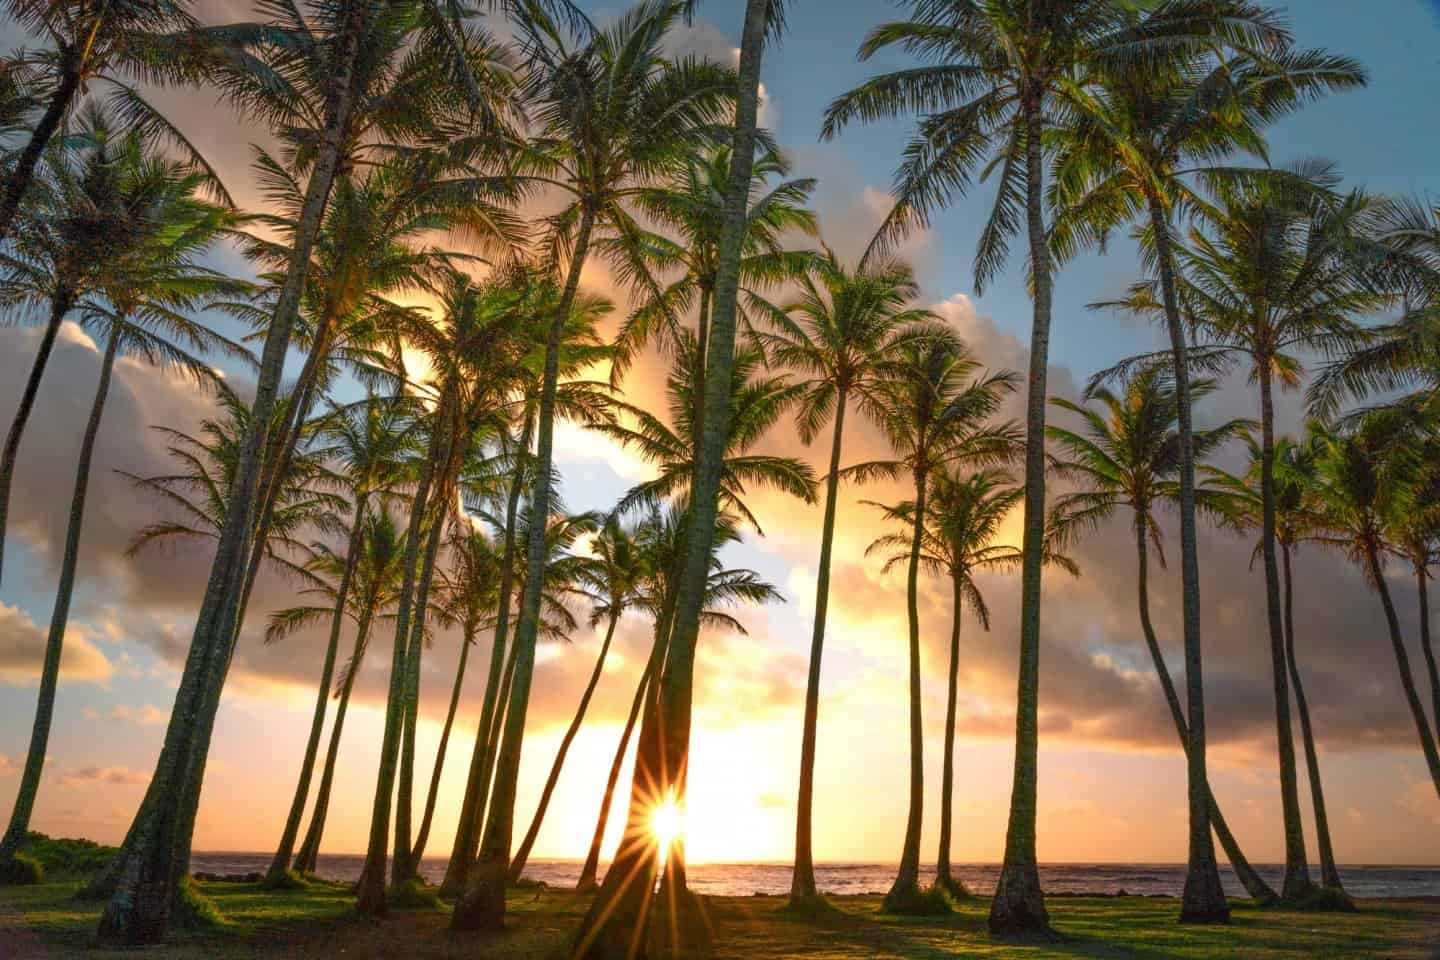 Sunrise photography of palm trees from Kapaa in Kauai.